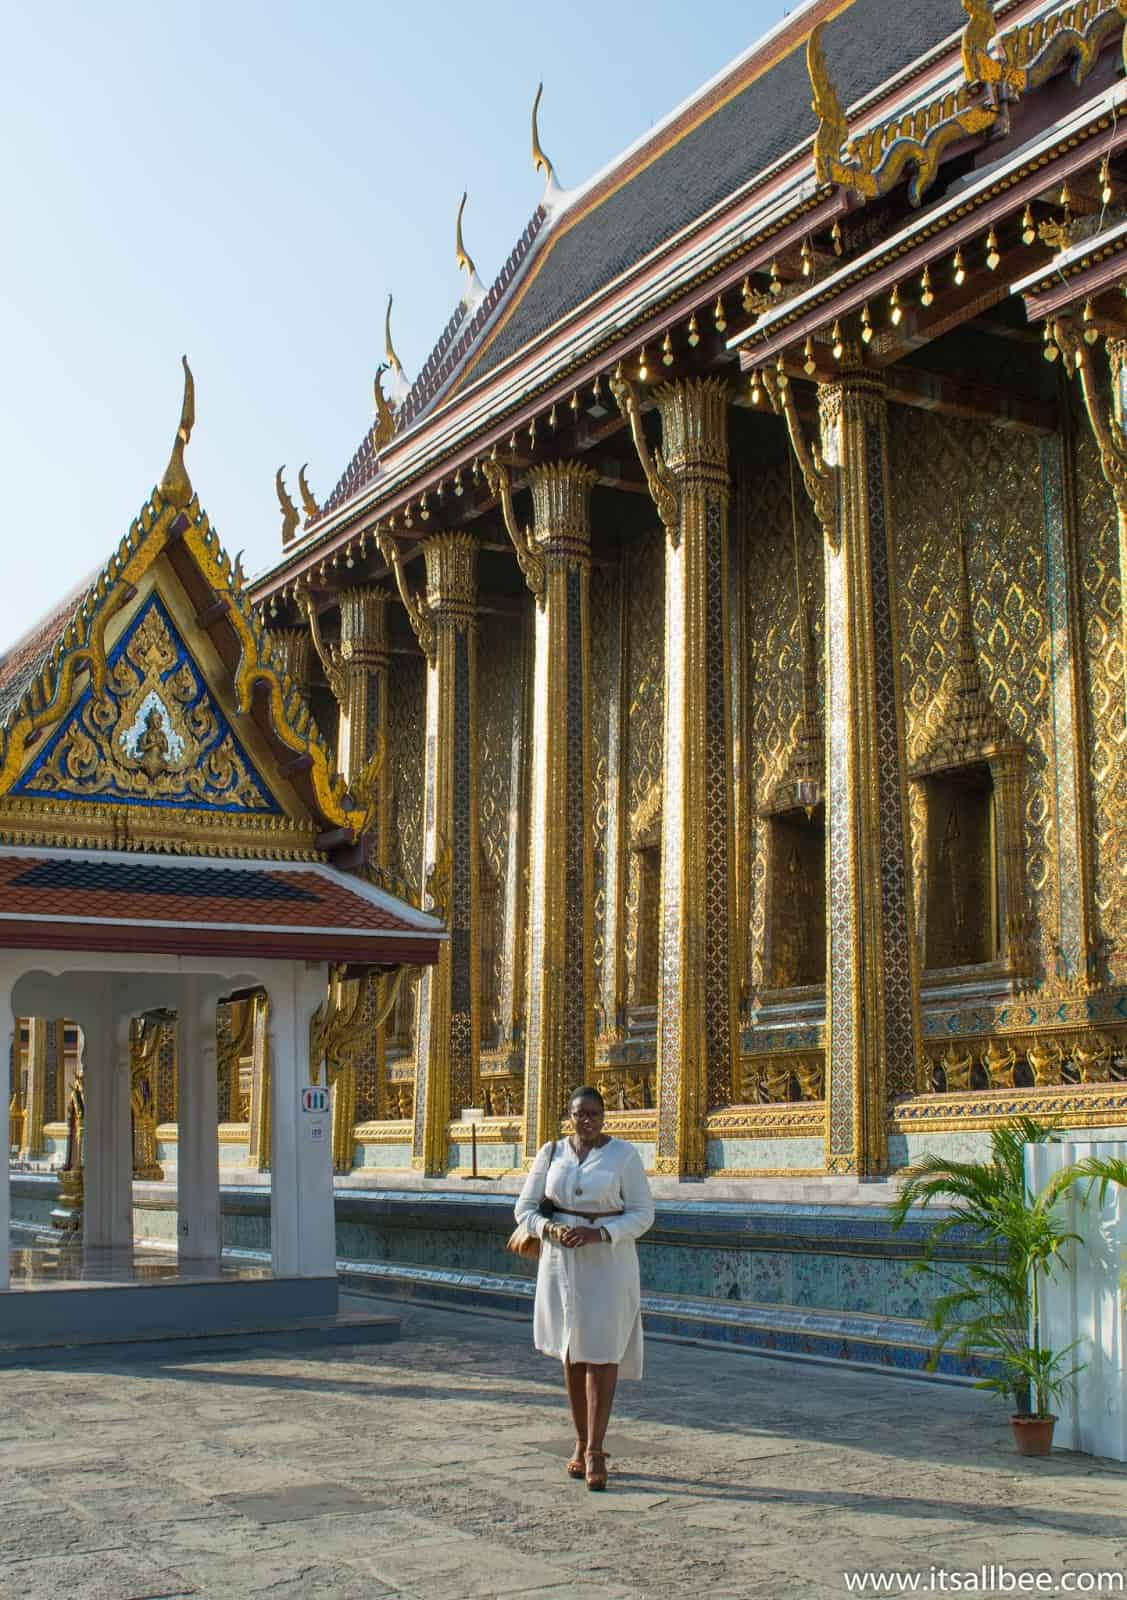 5 Reasons To Visit Bangkok And Why We Fell In Love With The Thai City - Bangkok Travel Guide and Things To Do In Bangkok